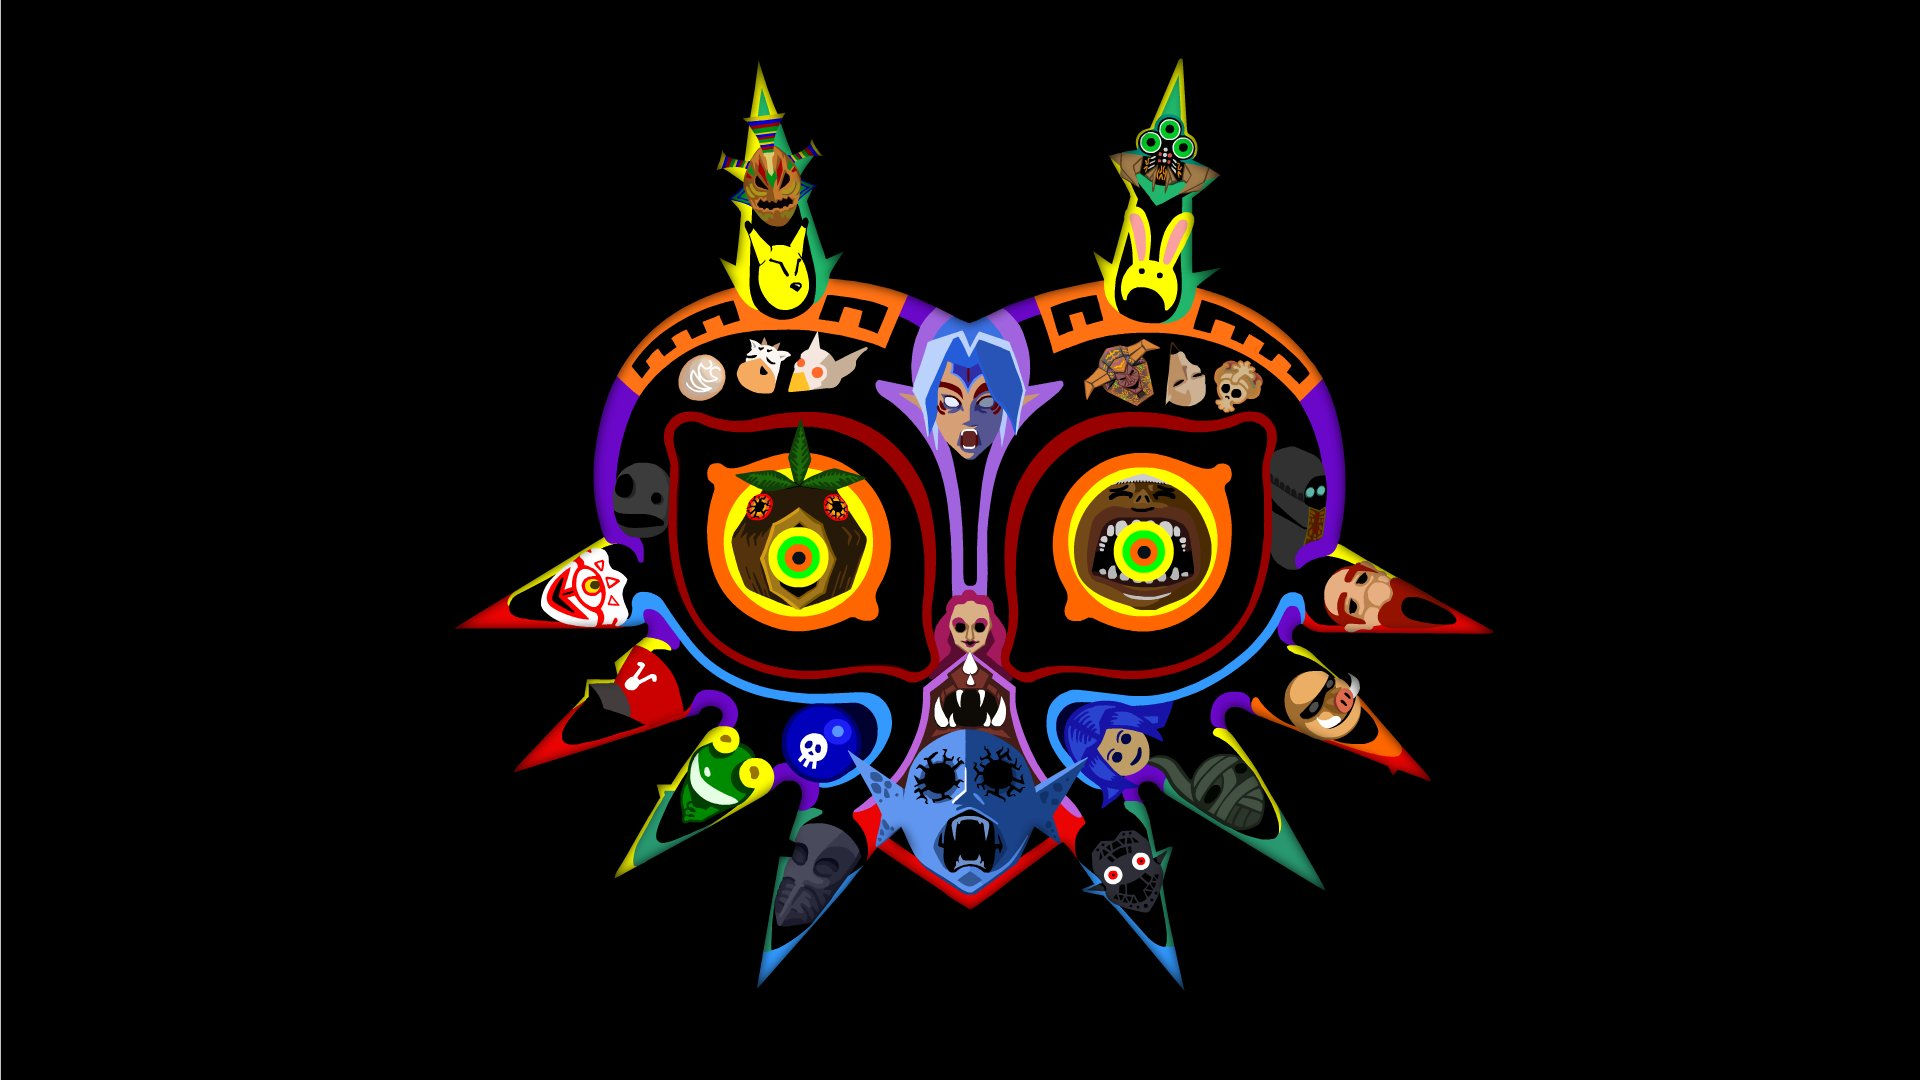 Majora S Mask Desktop Background: Mask Wallpapers, Photos And Desktop Backgrounds Up To 8K